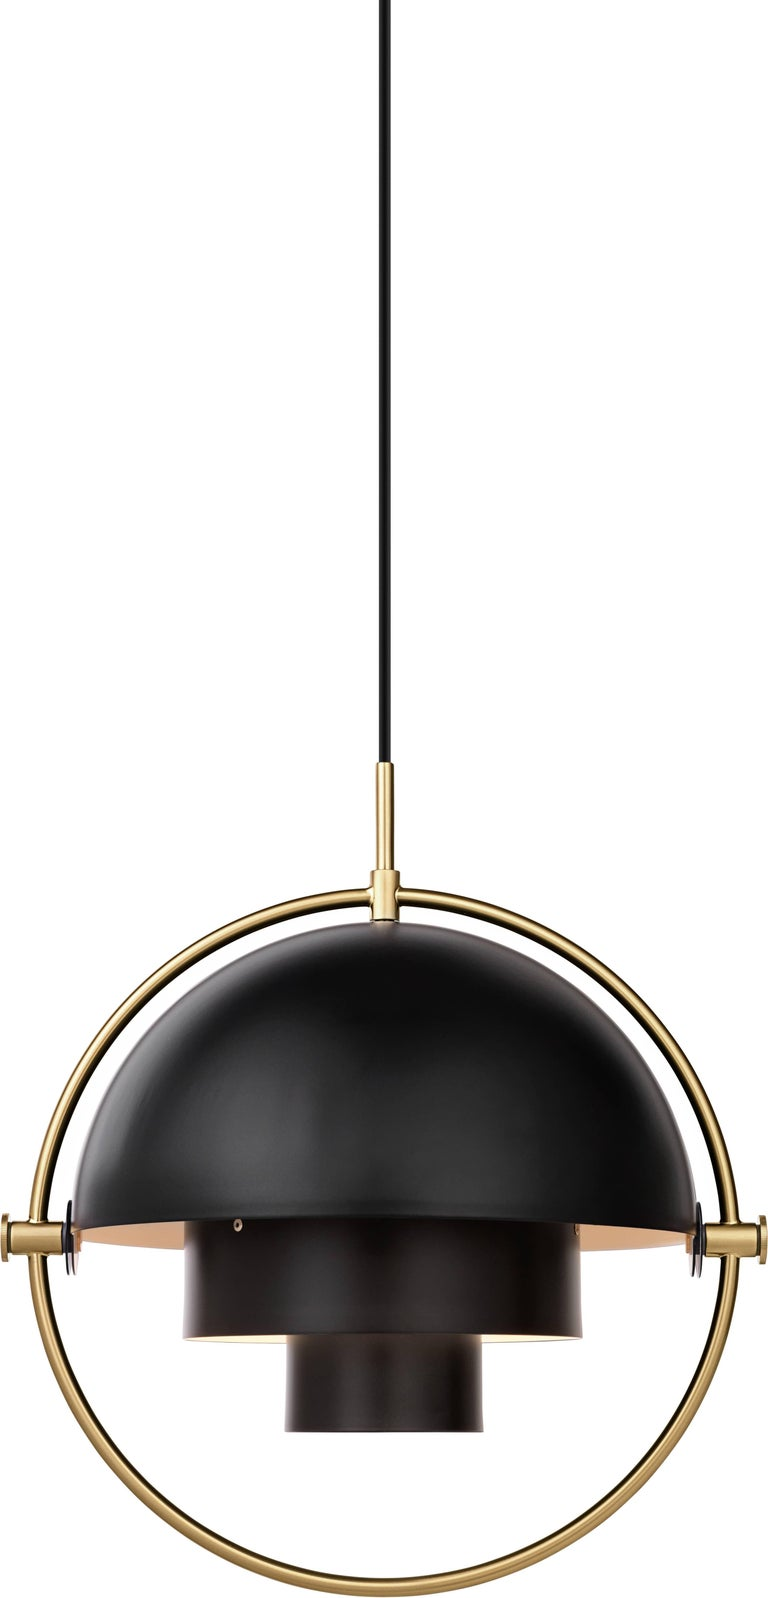 Brass multi-light pendant, Louis Weisdorf  Dimensions: 36 x 36 x 36 cm Material: Brass Designer: Louis Weisdorf Produced by Gubi in Denmark  The Multi-Lite pendant embraces the golden era of Danish design with its characteristic shape of two